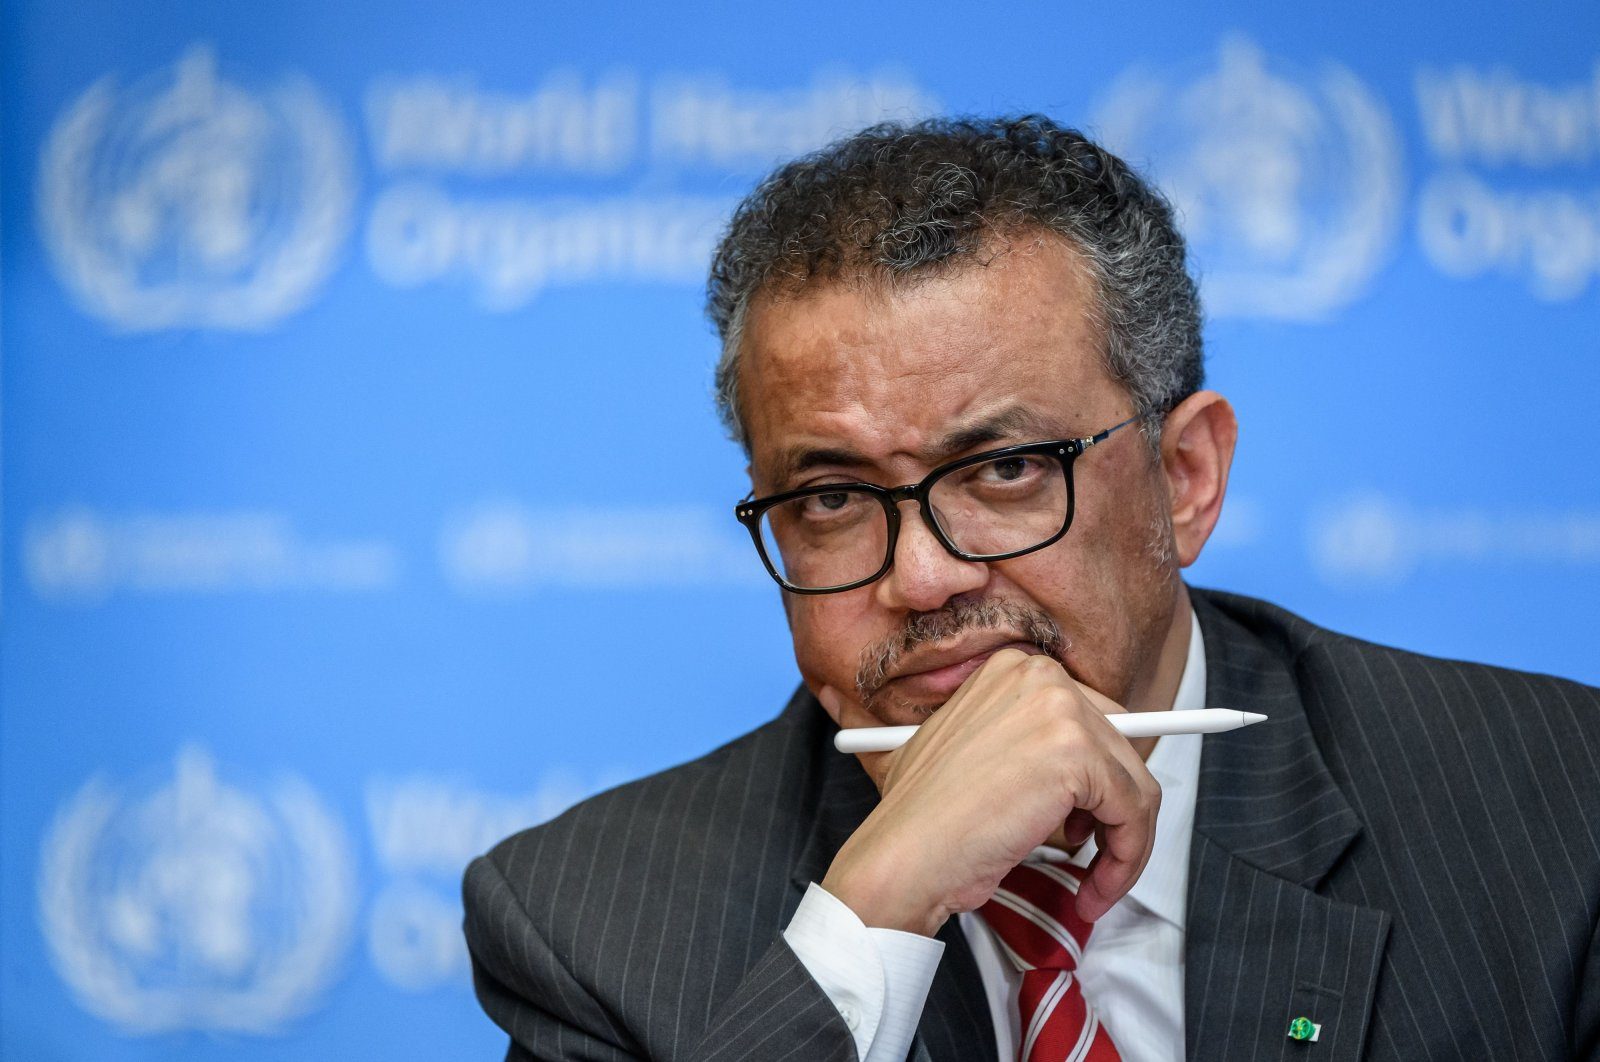 World Health Organization (WHO) Director-General Tedros Adhanom Ghebreyesus attends a daily press briefing on COVID-19, the disease caused by the coronavirus, at the WHO headquarters in Geneva, Switzerland, March 11, 2020. (AFP Photo)